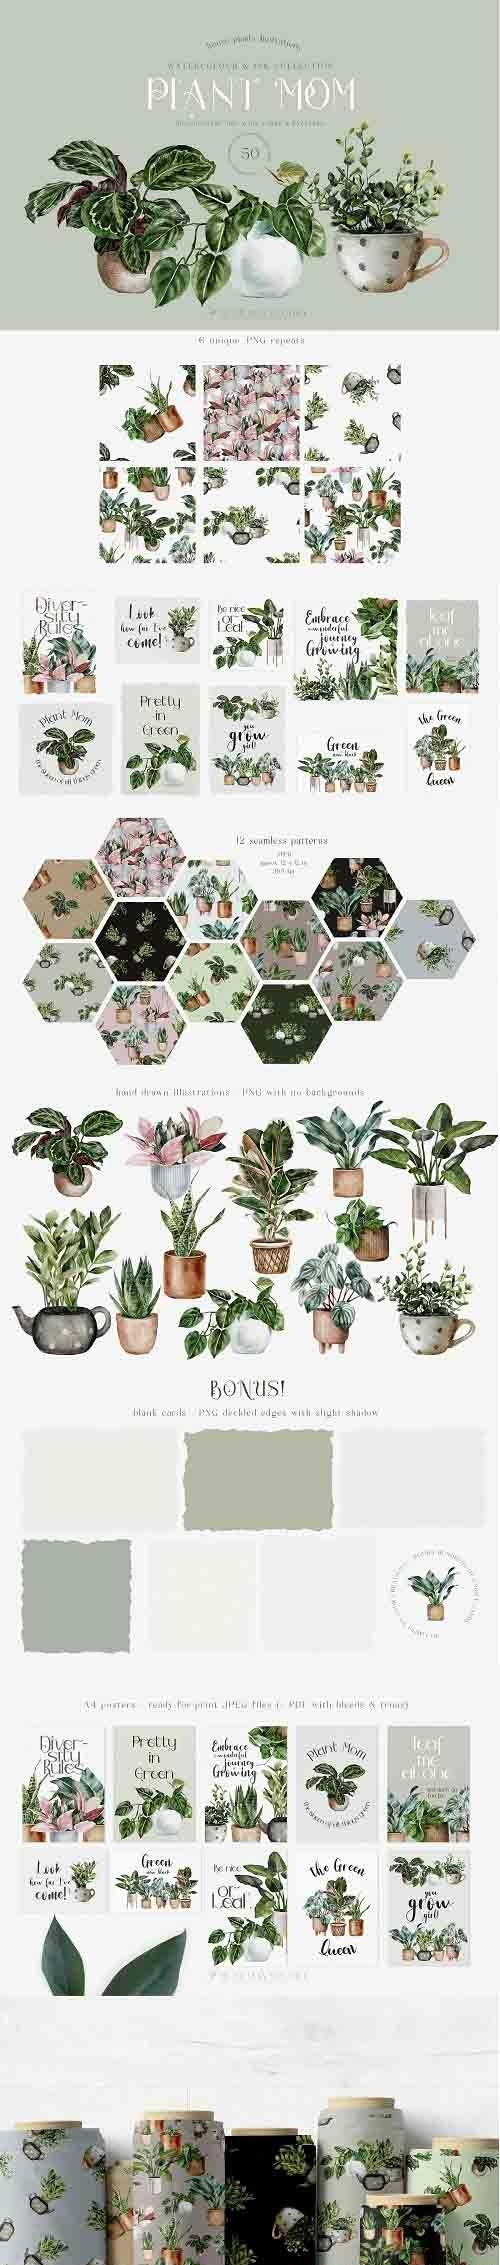 House Plants Illustrations and Patterns Big Collection - 1311192